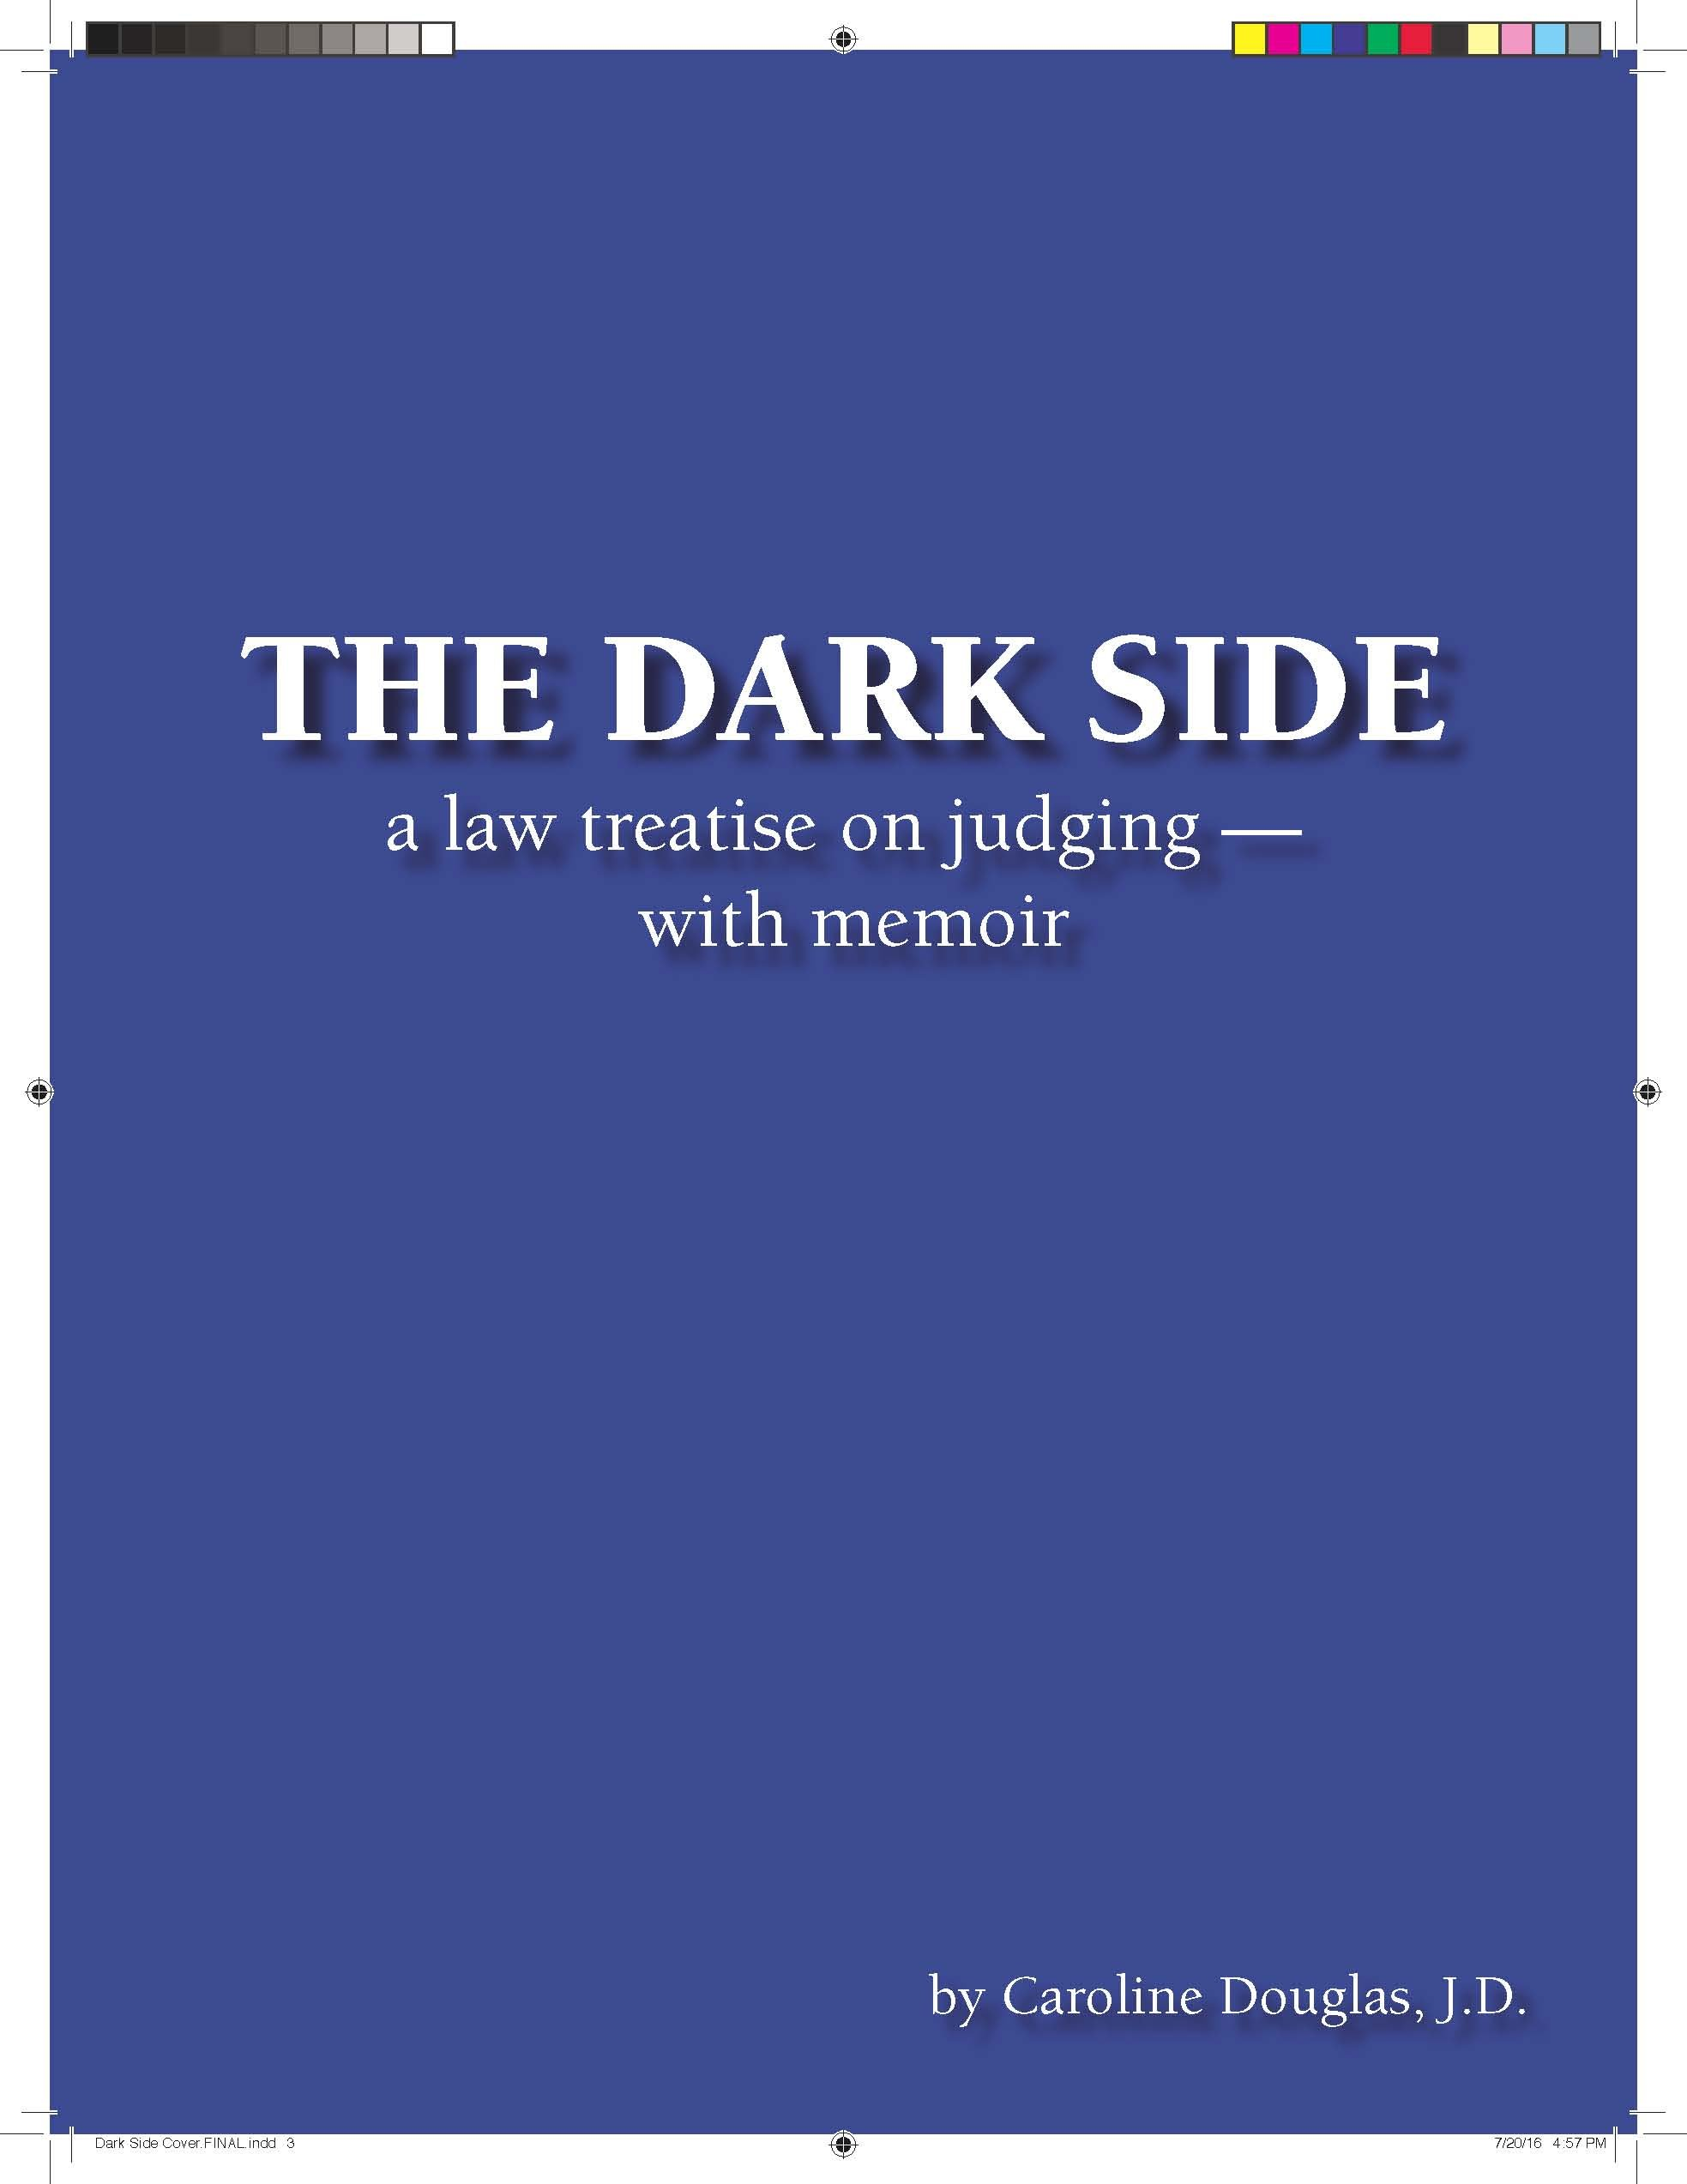 Download THE DARK SIDE A Law Treatise on Judging -- with memoir pdf